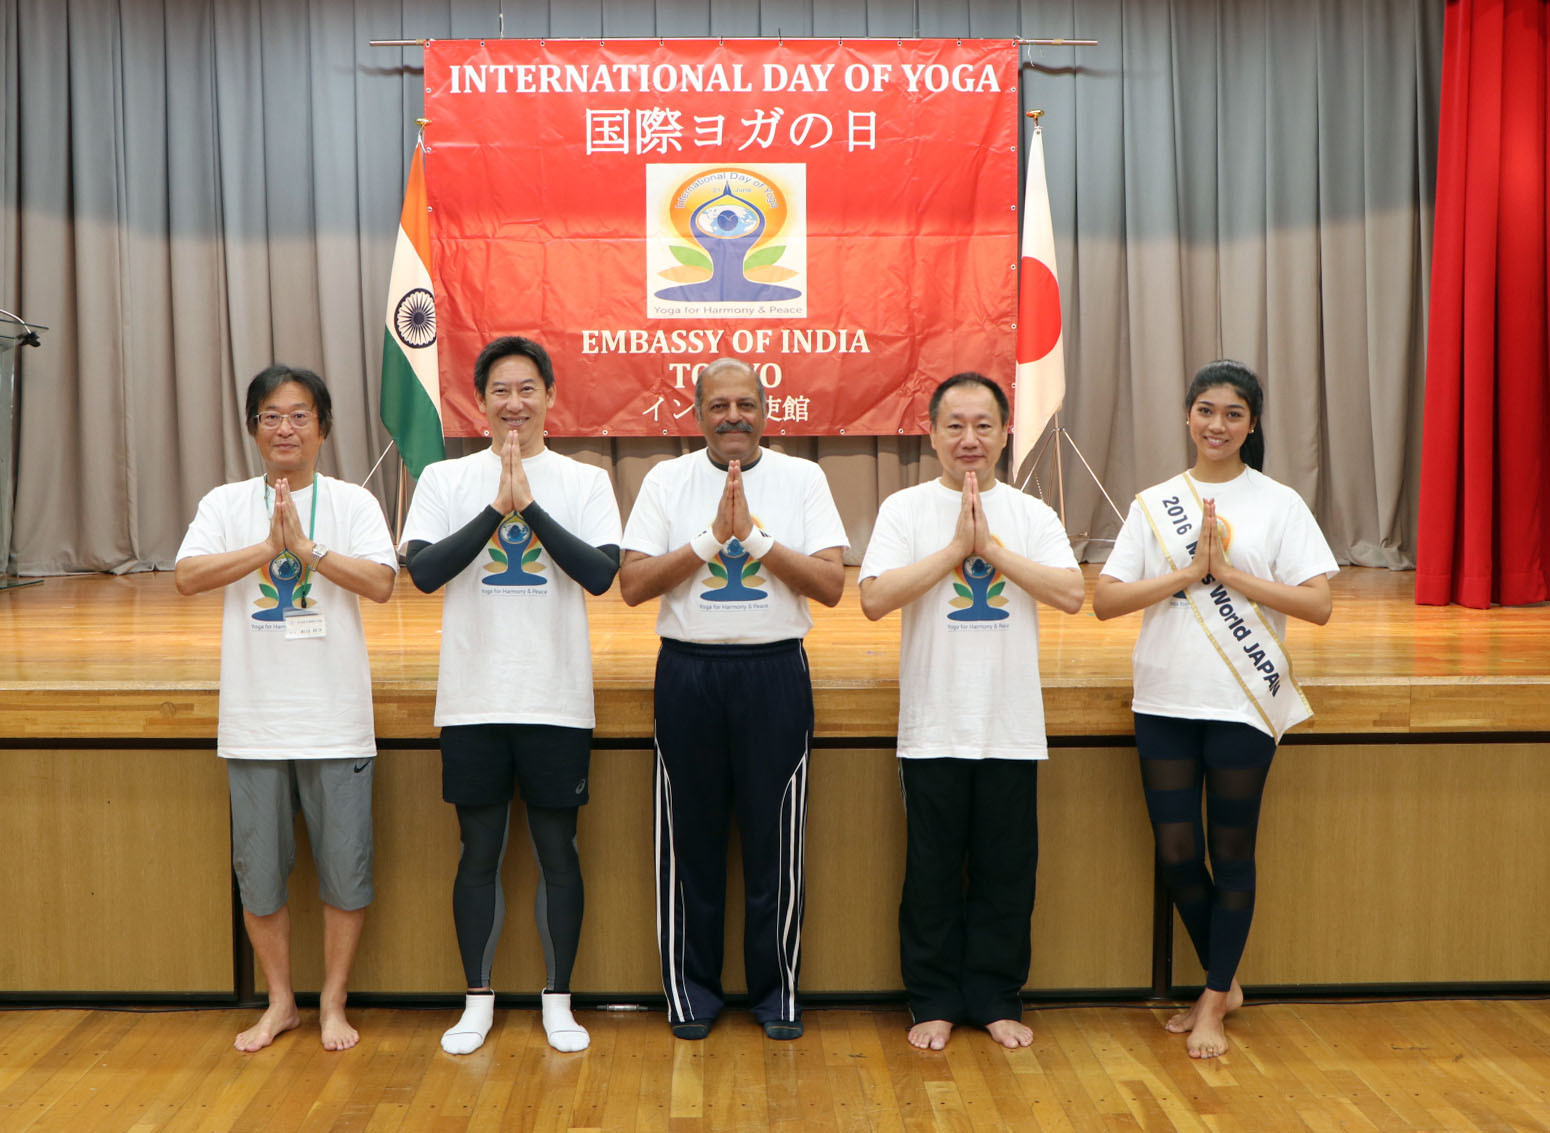 Indian Ambassador Sujan R. Chinoy (center) poses for a photo with (from left) Toshitsugu Wada, the principal of Taimei Elementary School, Tokyo; Japan Sports Agency Commissioner Daichi Suzuki; Hiroshi Yamada, Upper House member and secretary-general of the Parliamentary League for the Promotion of Yoga in Japan; and Miss Japan Priyanka Yoshikawa on the third International Day of Yoga in Taimei Elementary School in Ginza on June 18. |  PHOTO COURTESY OF INDIA EMBASSY